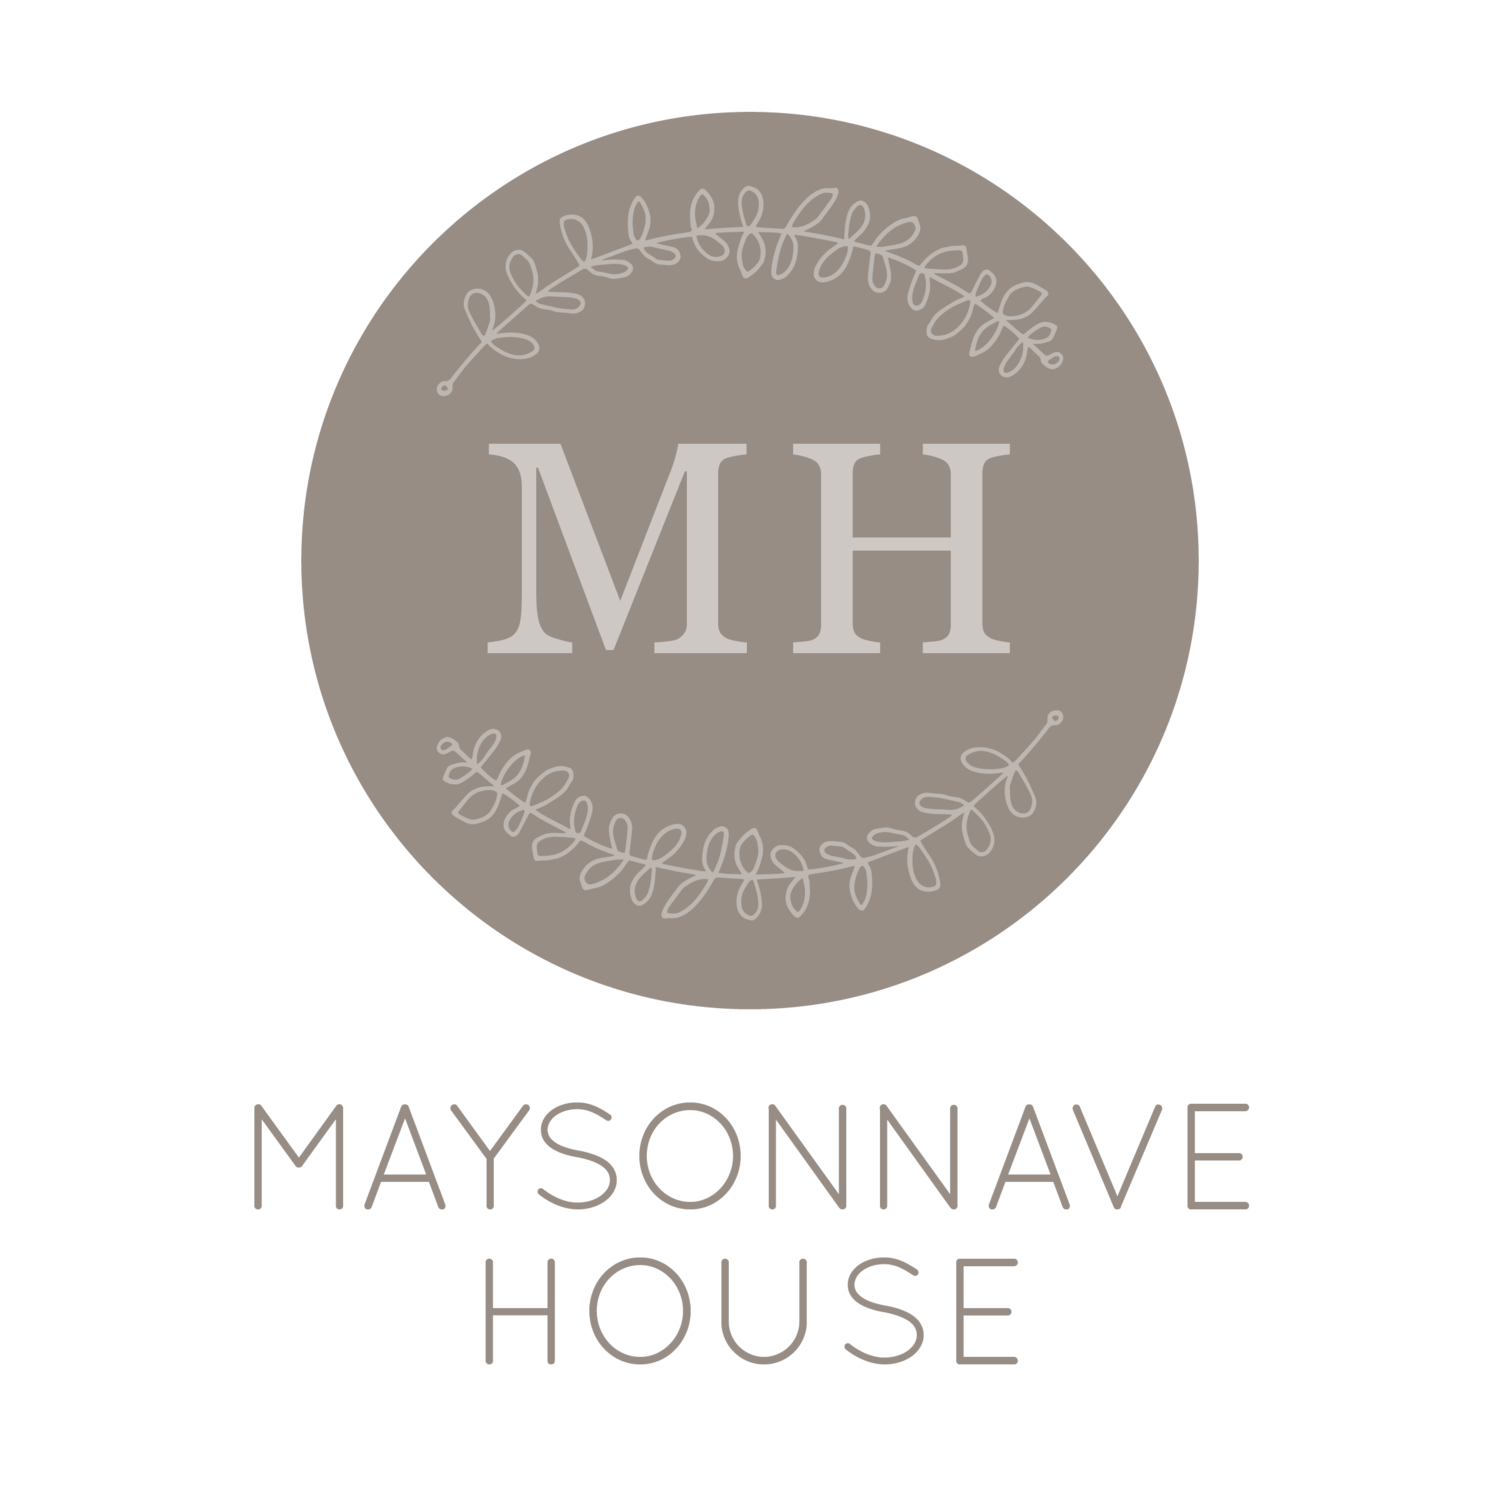 Maysonnave House